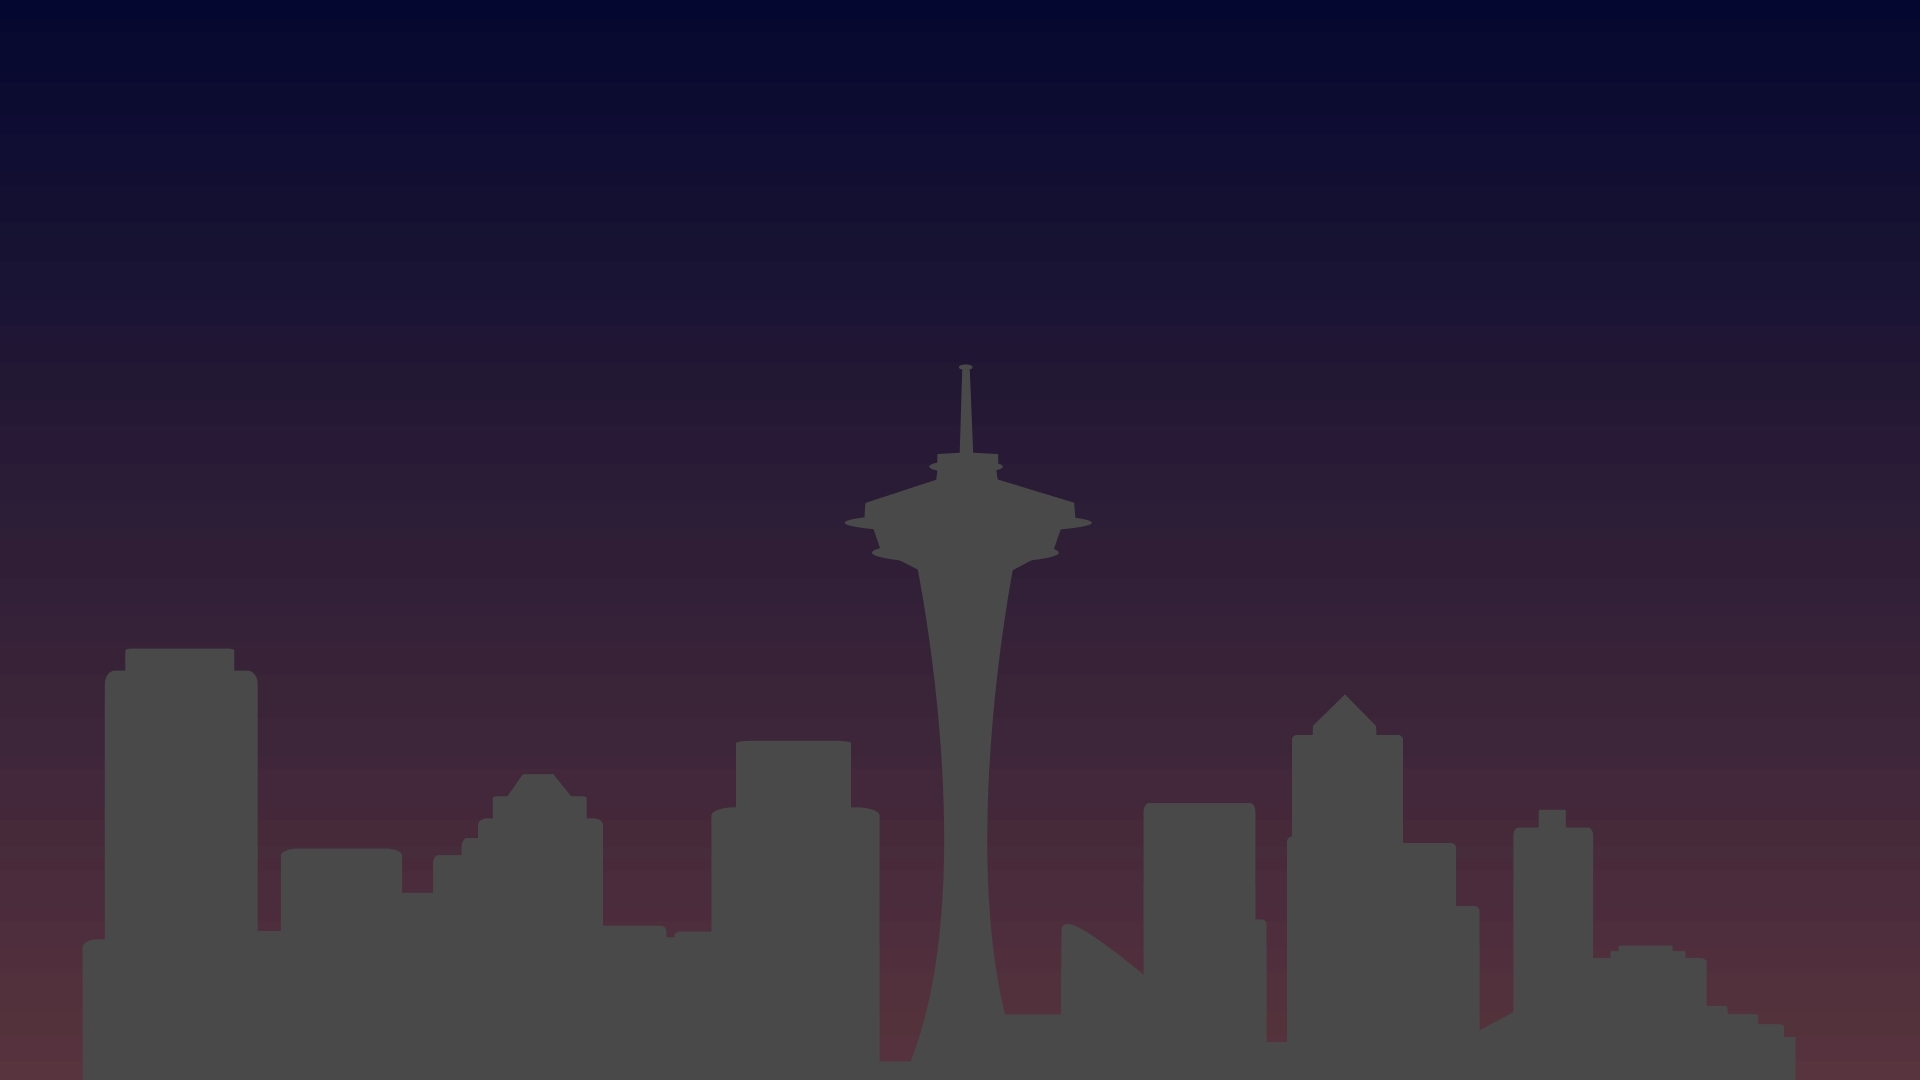 aftereffects, seattle july 4th fireworks GIFs